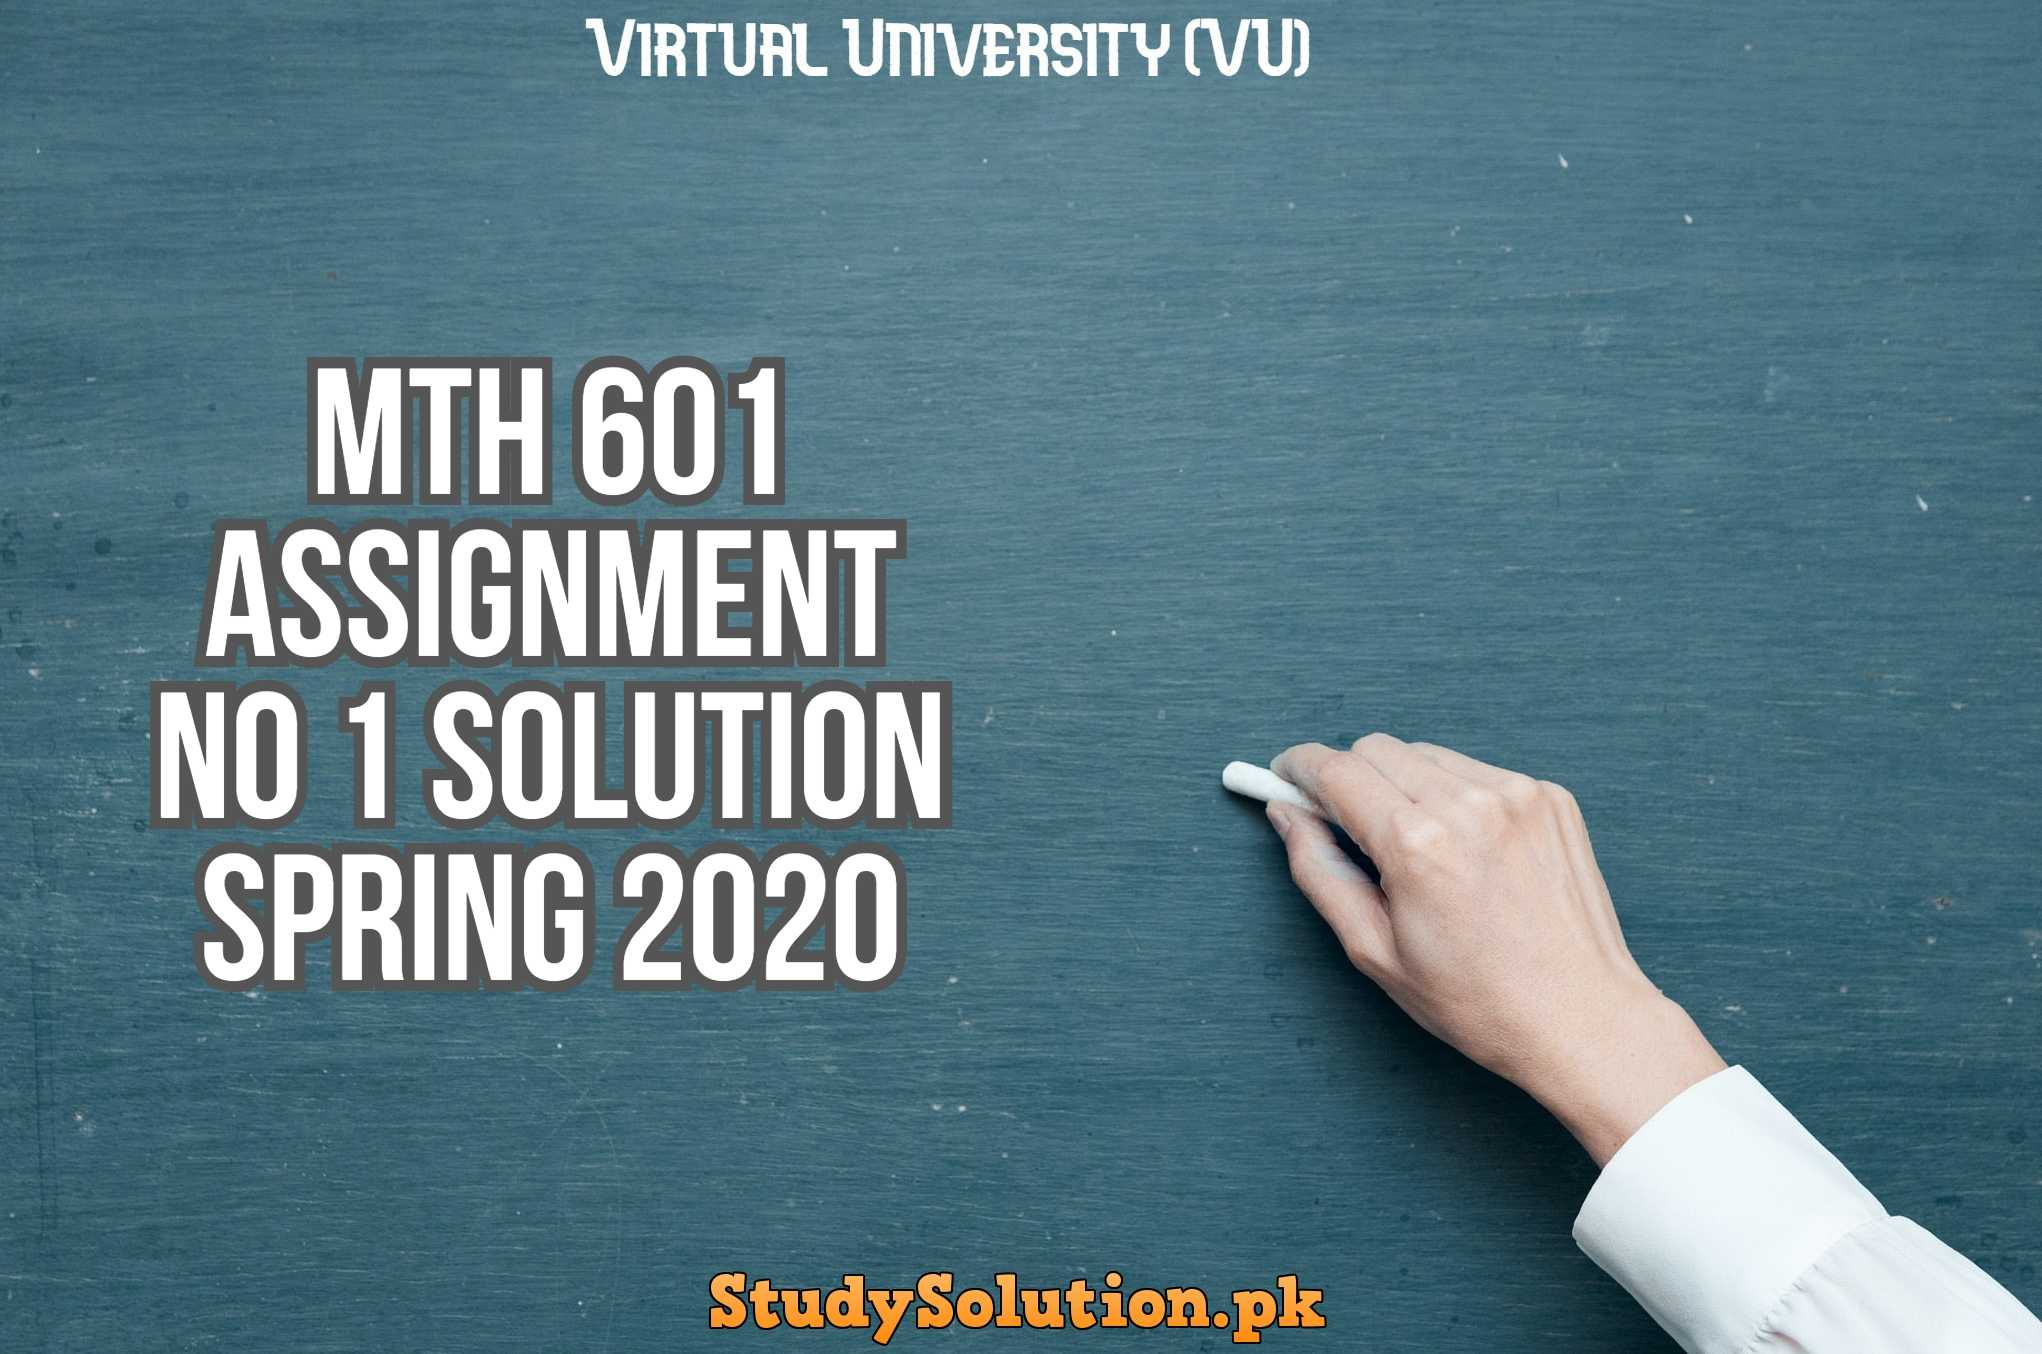 MTH 601 Assignment No 1 Solution Spring 2020